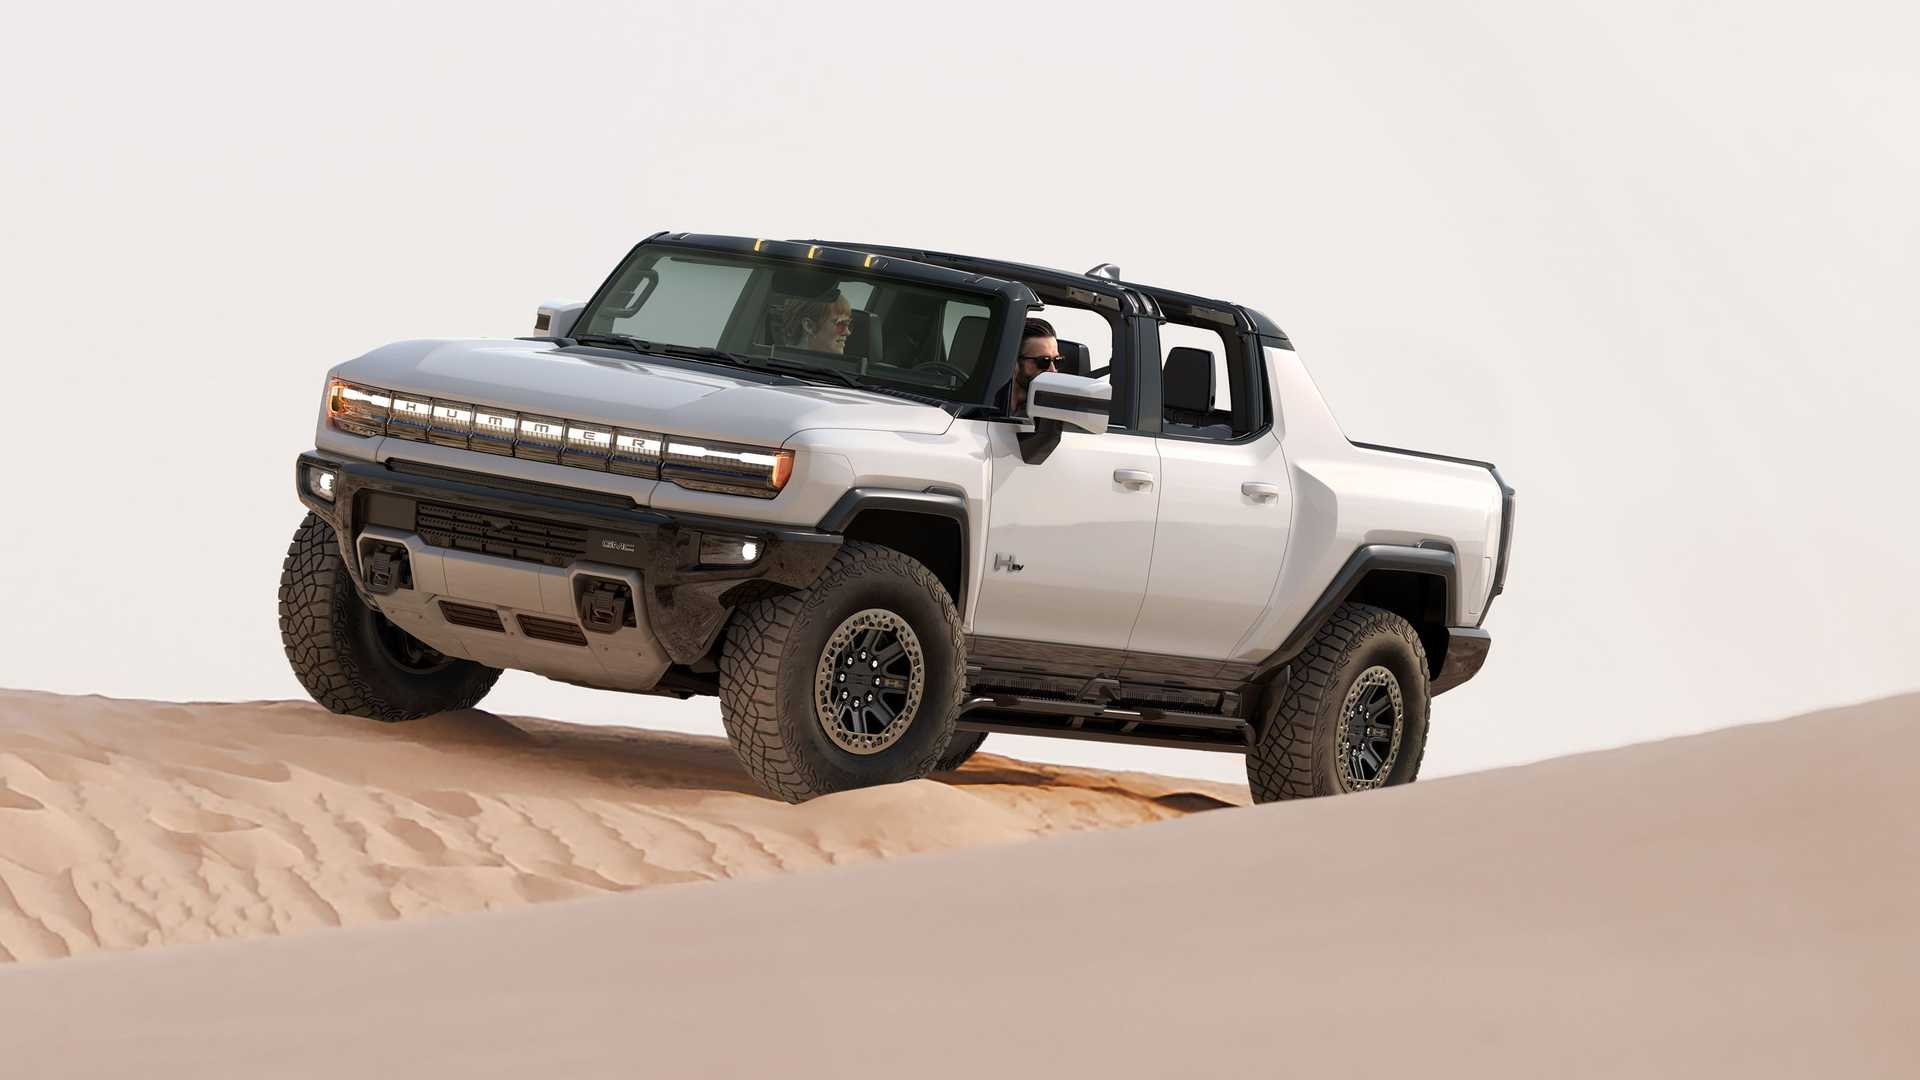 Gmc Hummer Ev Battery Is Over 200 Kwh But Range Is Only 350 Miles Why